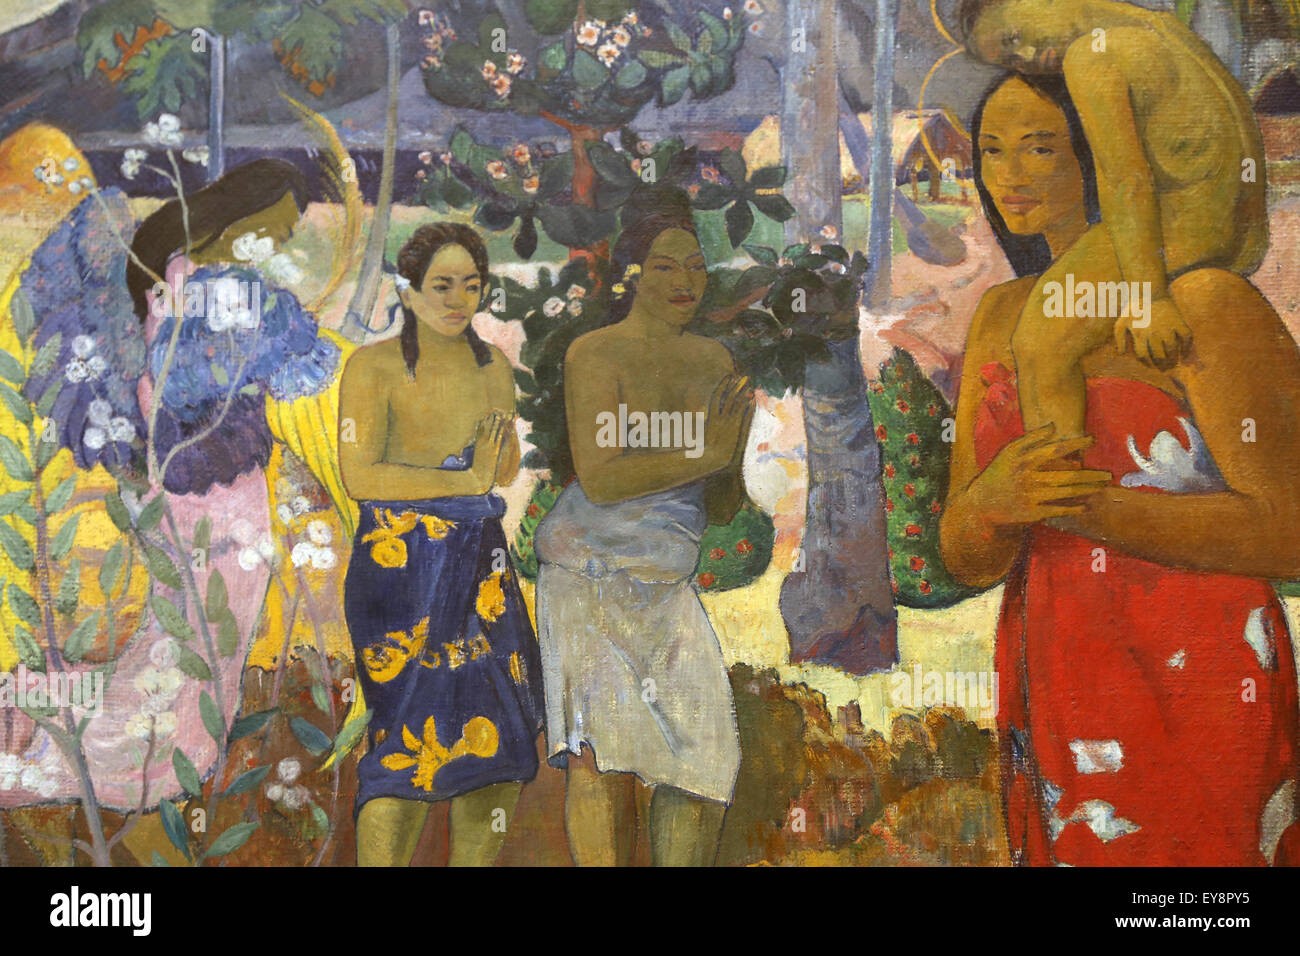 paul gauguin 1848 1903 essay 2017-11-21 paul gauguin (1848-1903) wrote racontars de rapin only months before he died in 1903, but the essay remained unpublished until 1951.